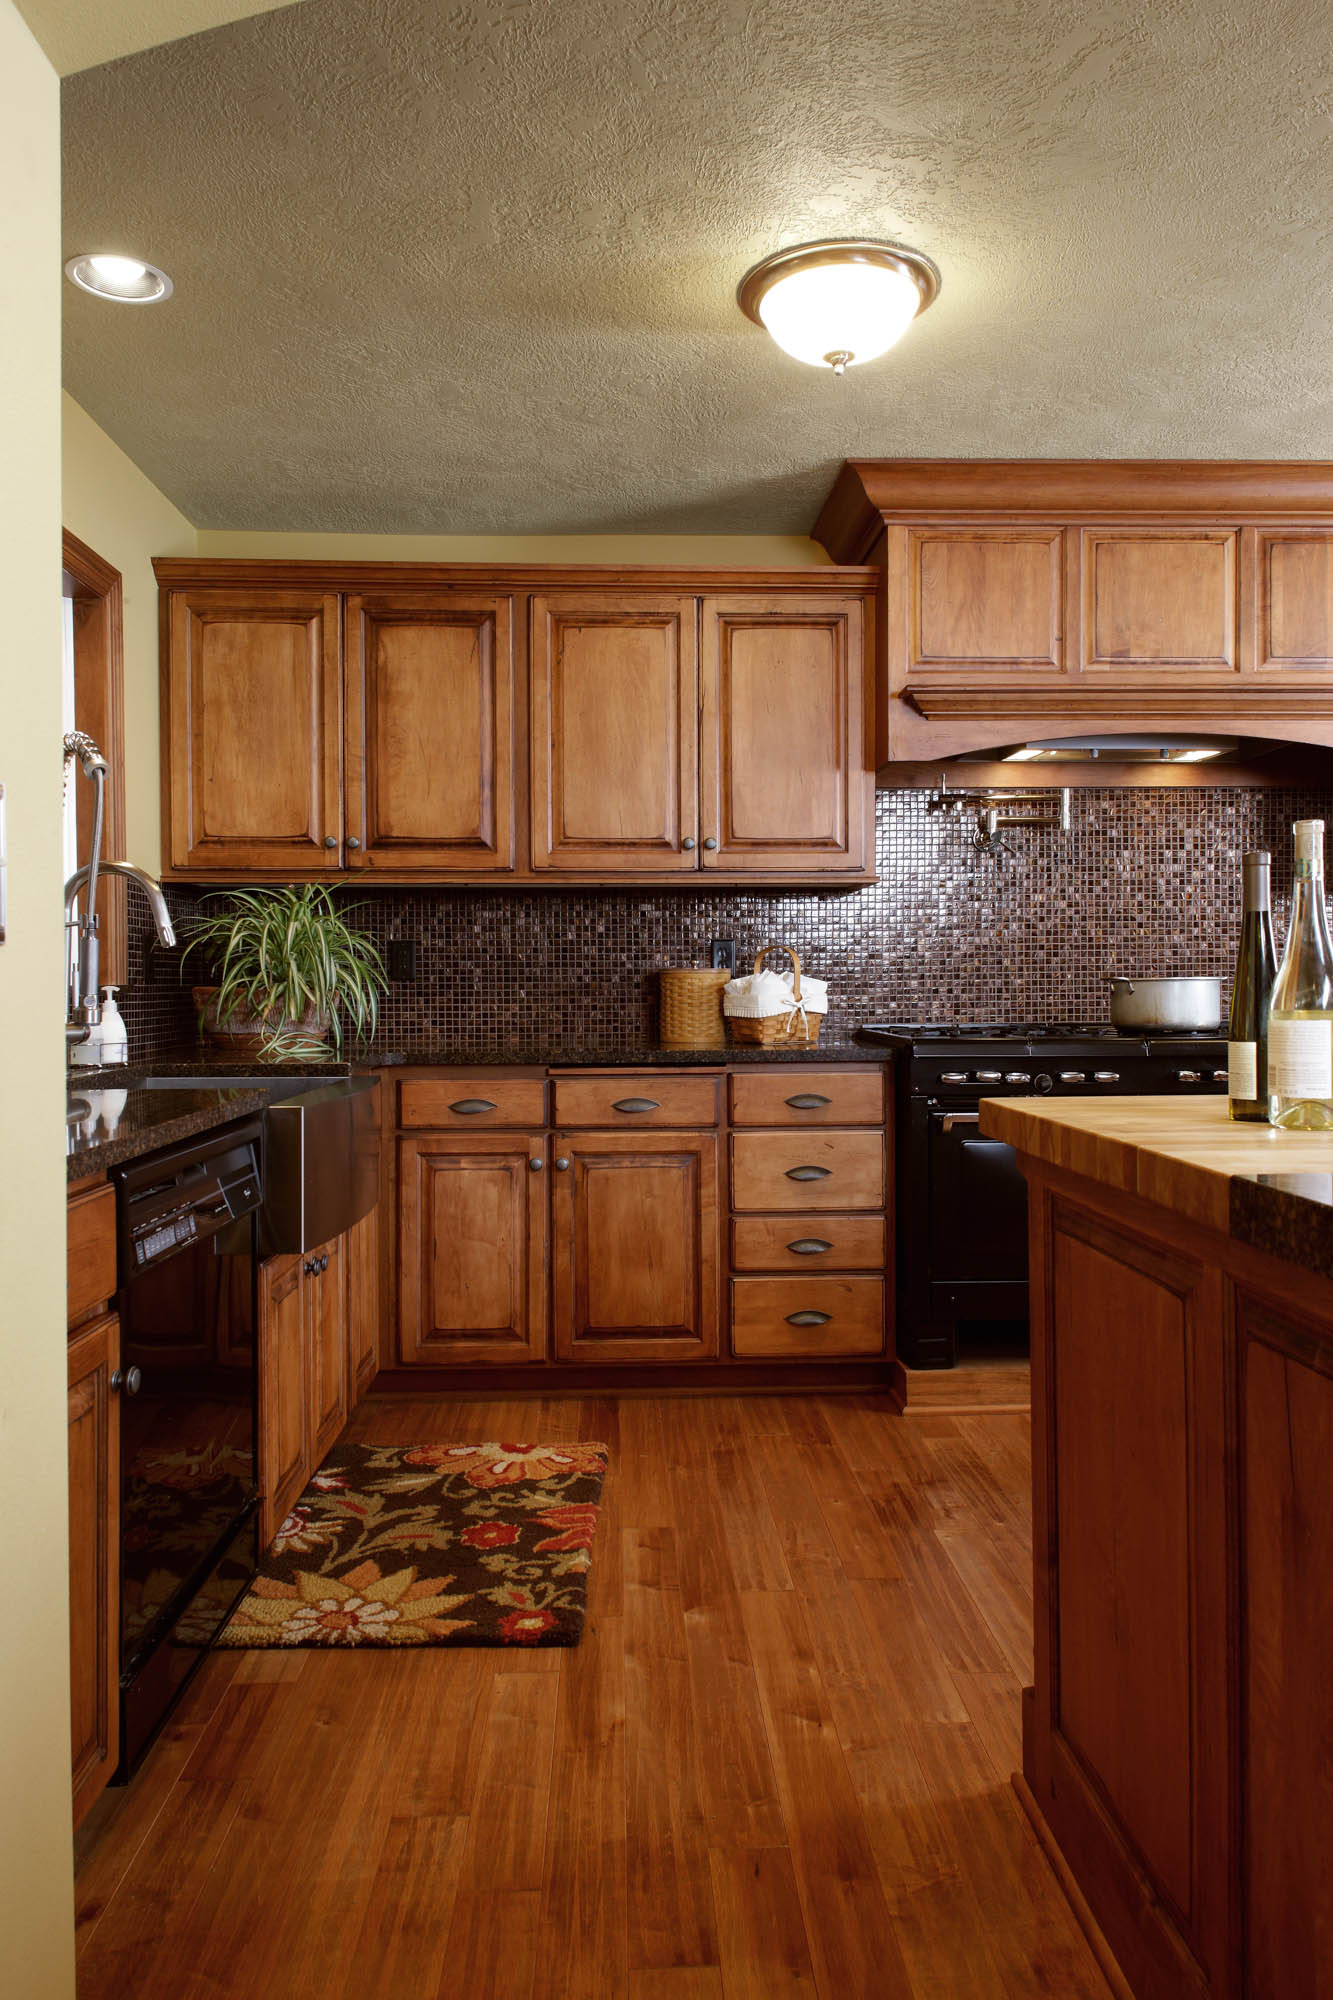 View The New Cabinets In This Refaced Kitchen Showplace